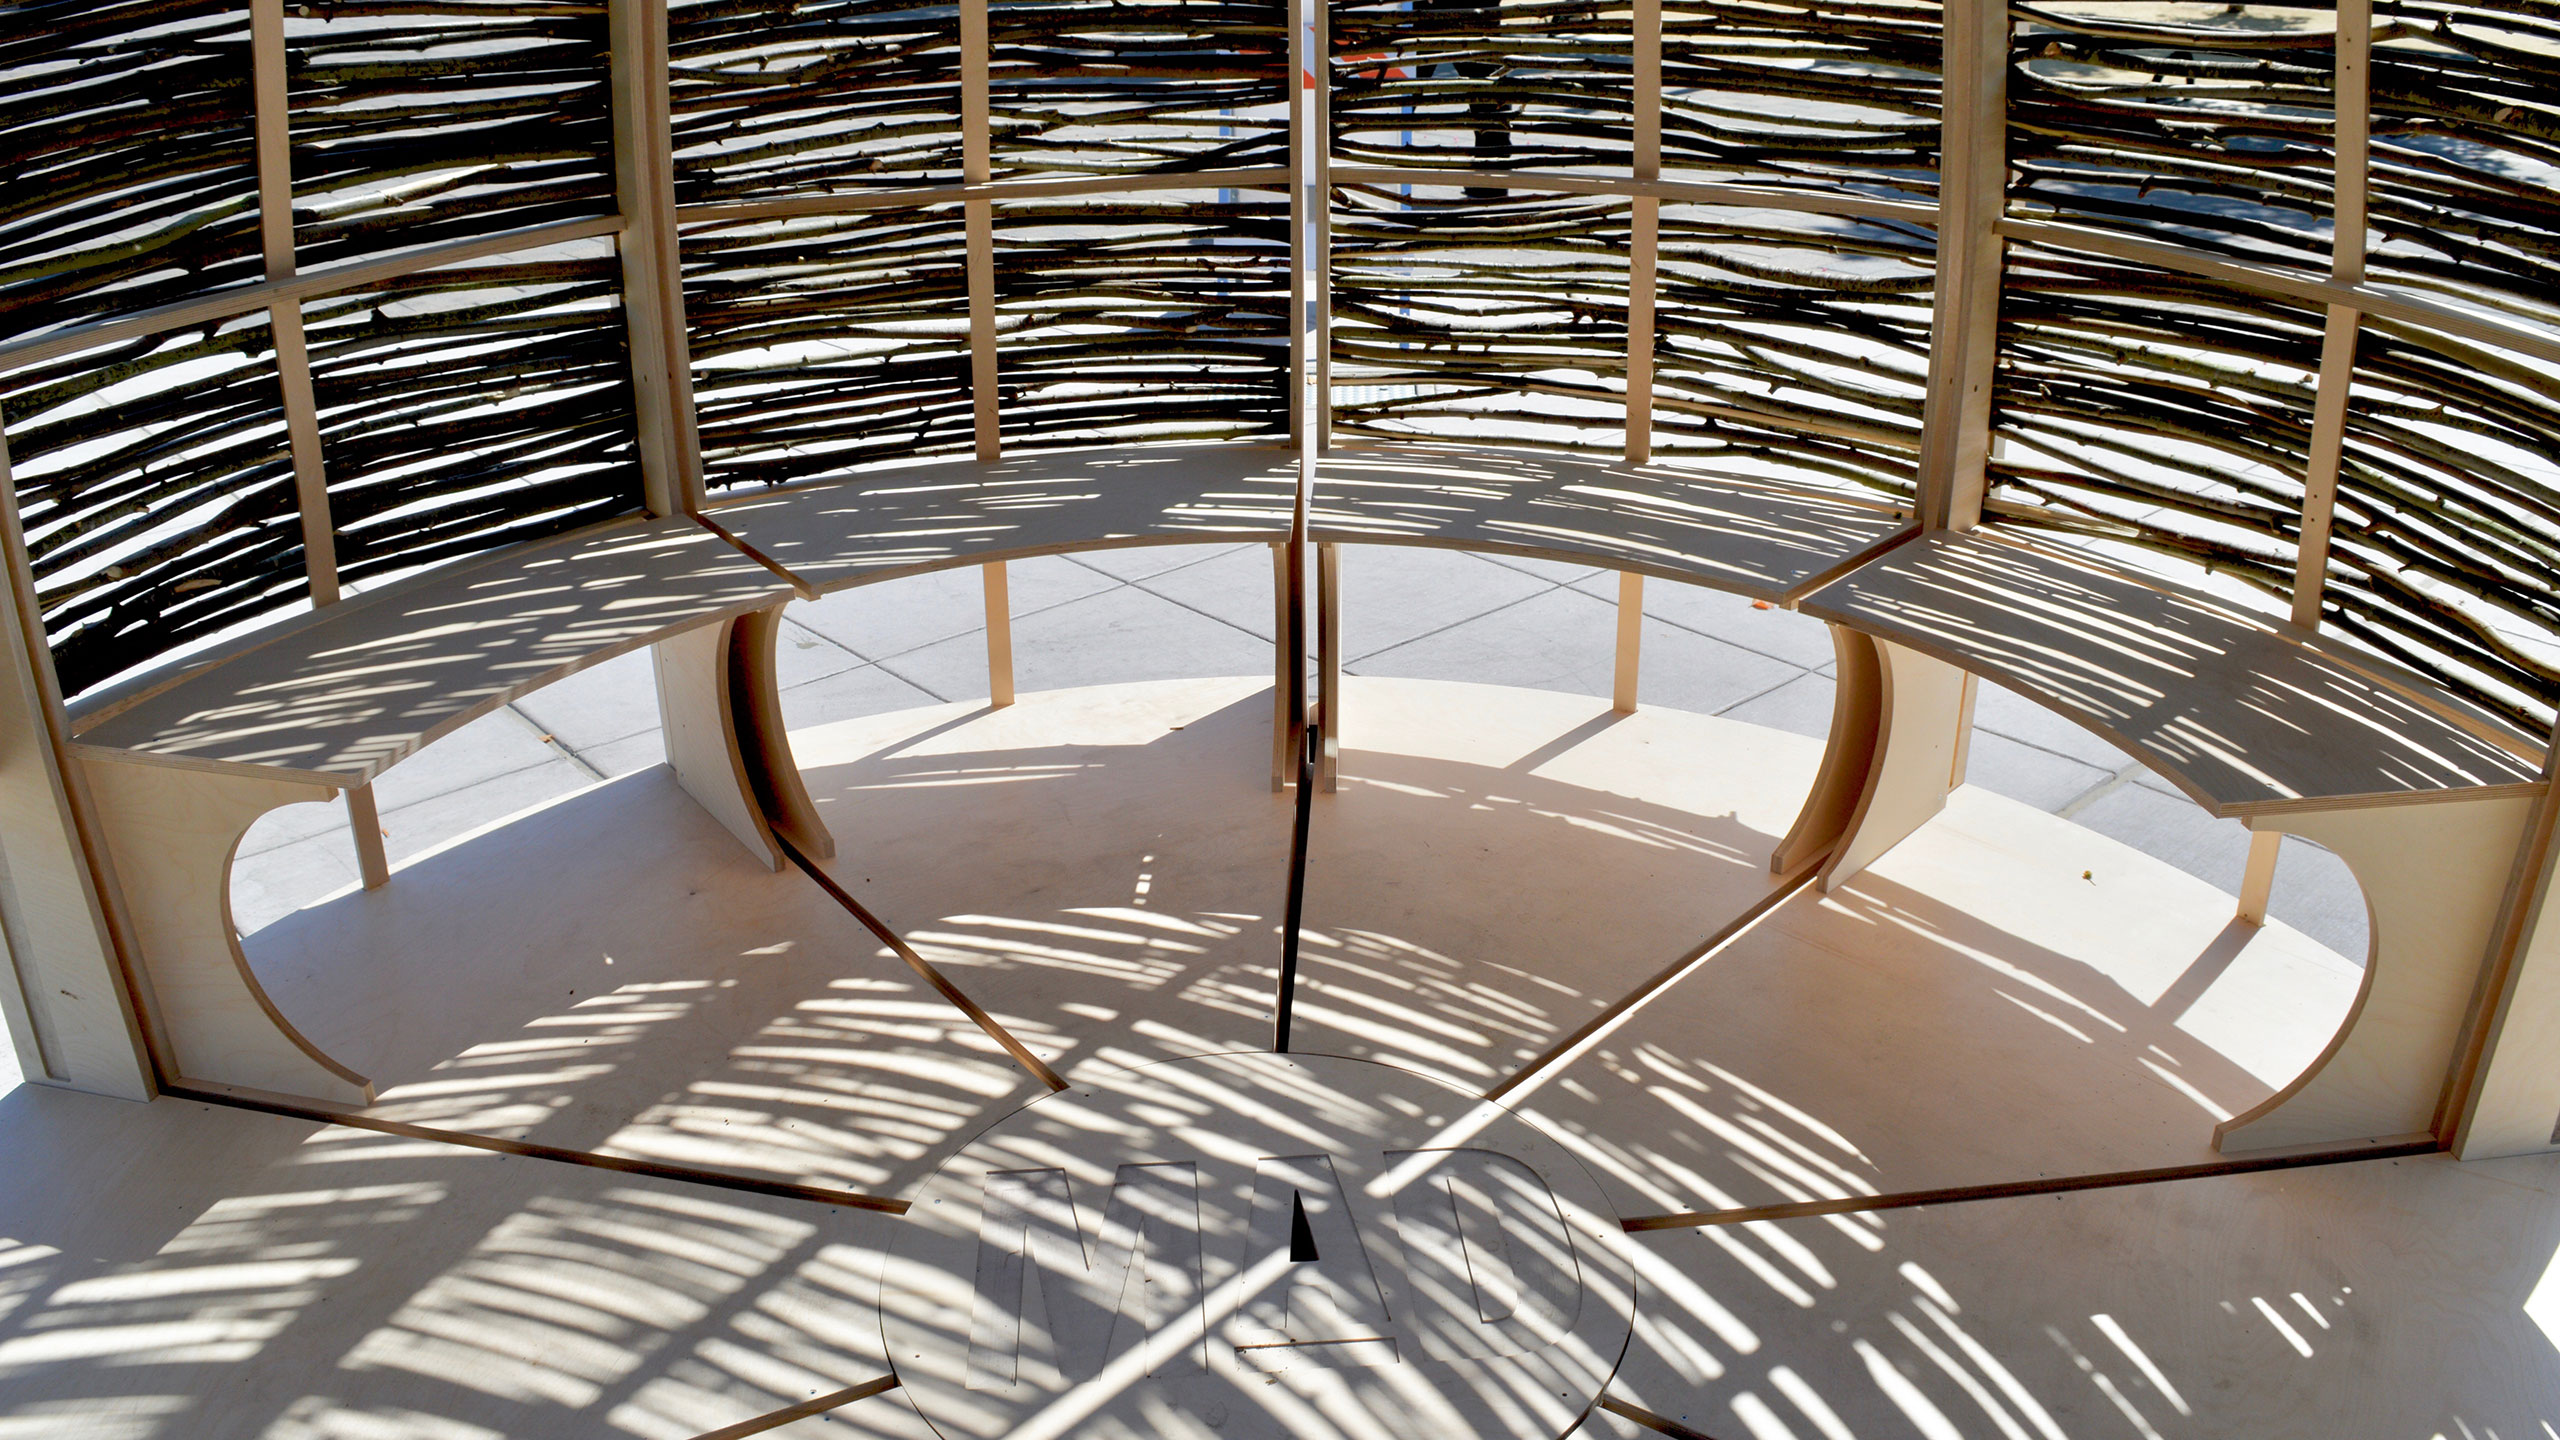 Architecture-in-balance-with-nature-Santa-Rosa-plywood-seating-structure-CNC-cut